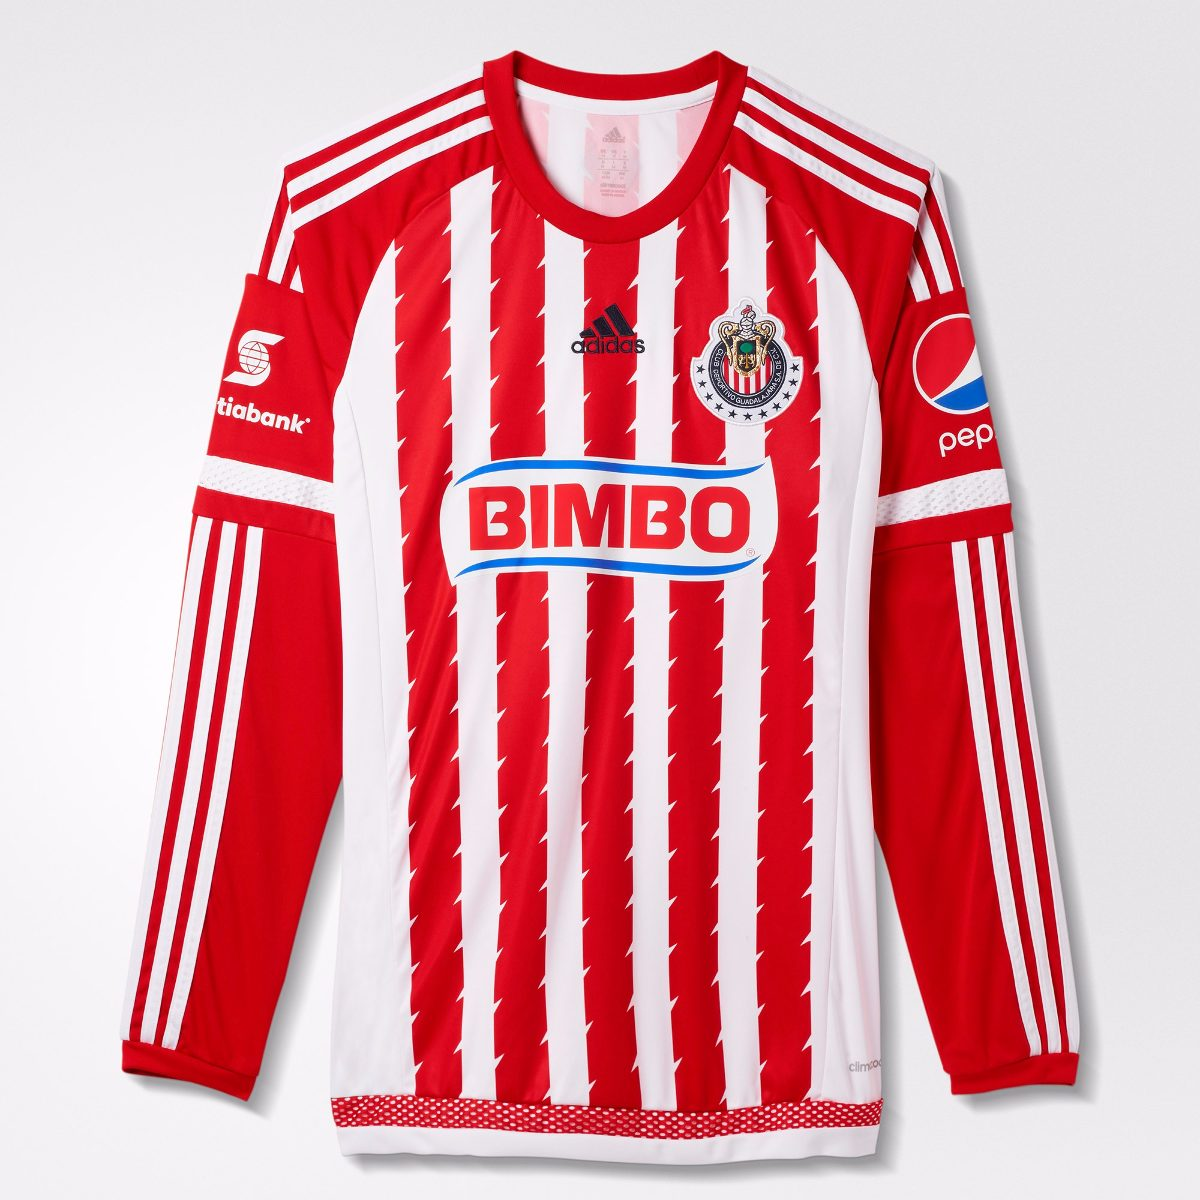 jersey chivas local 2015 manga larga adidas 100% original. Cargando zoom. a5708b241db2c